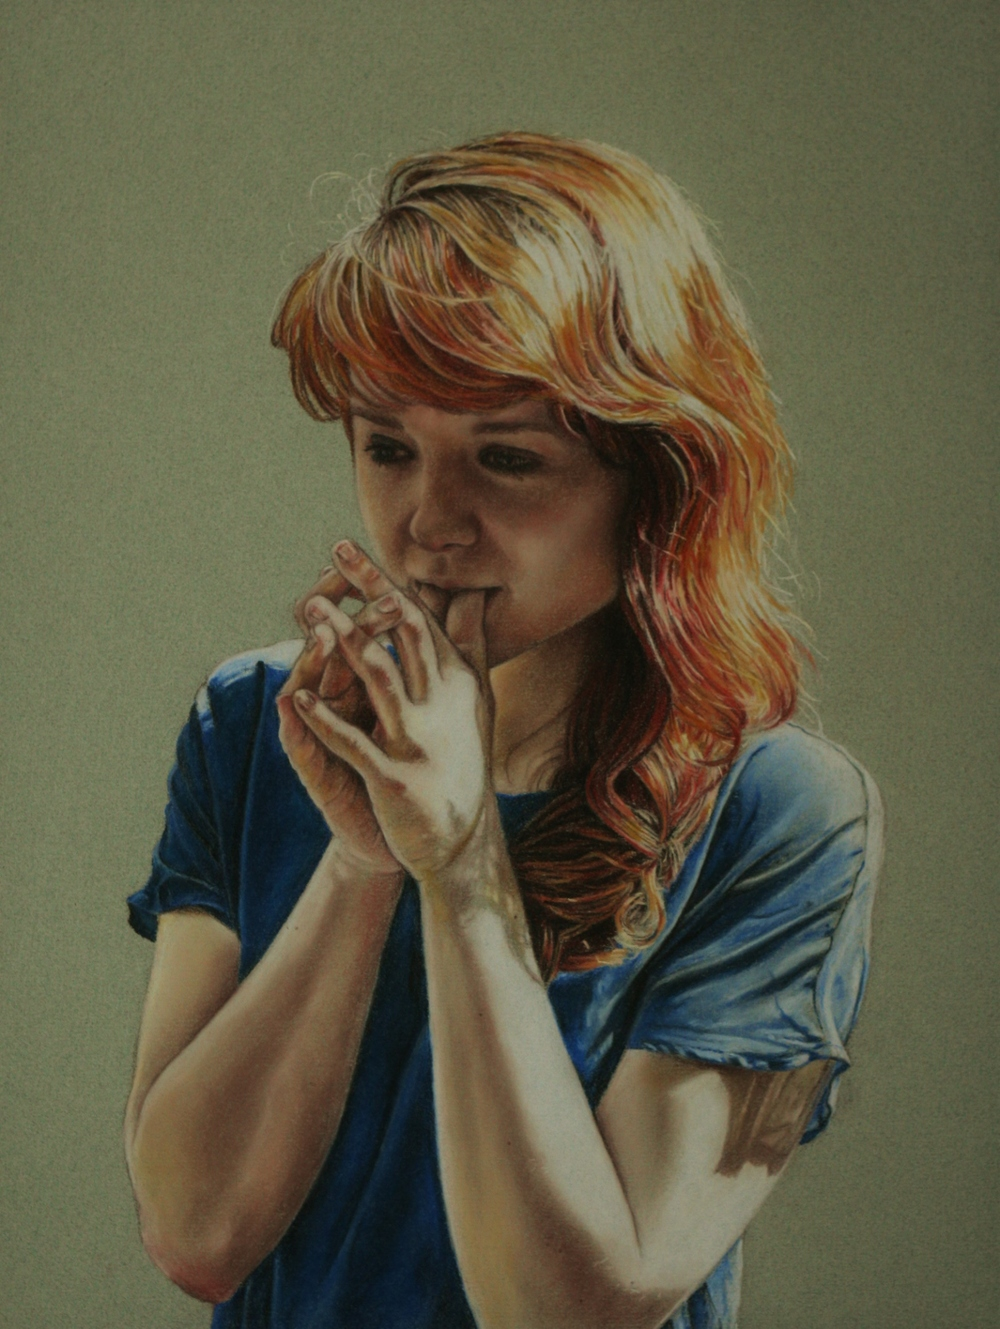 Summer Portrait - Pastel Pencil on Paper (30x42cm)